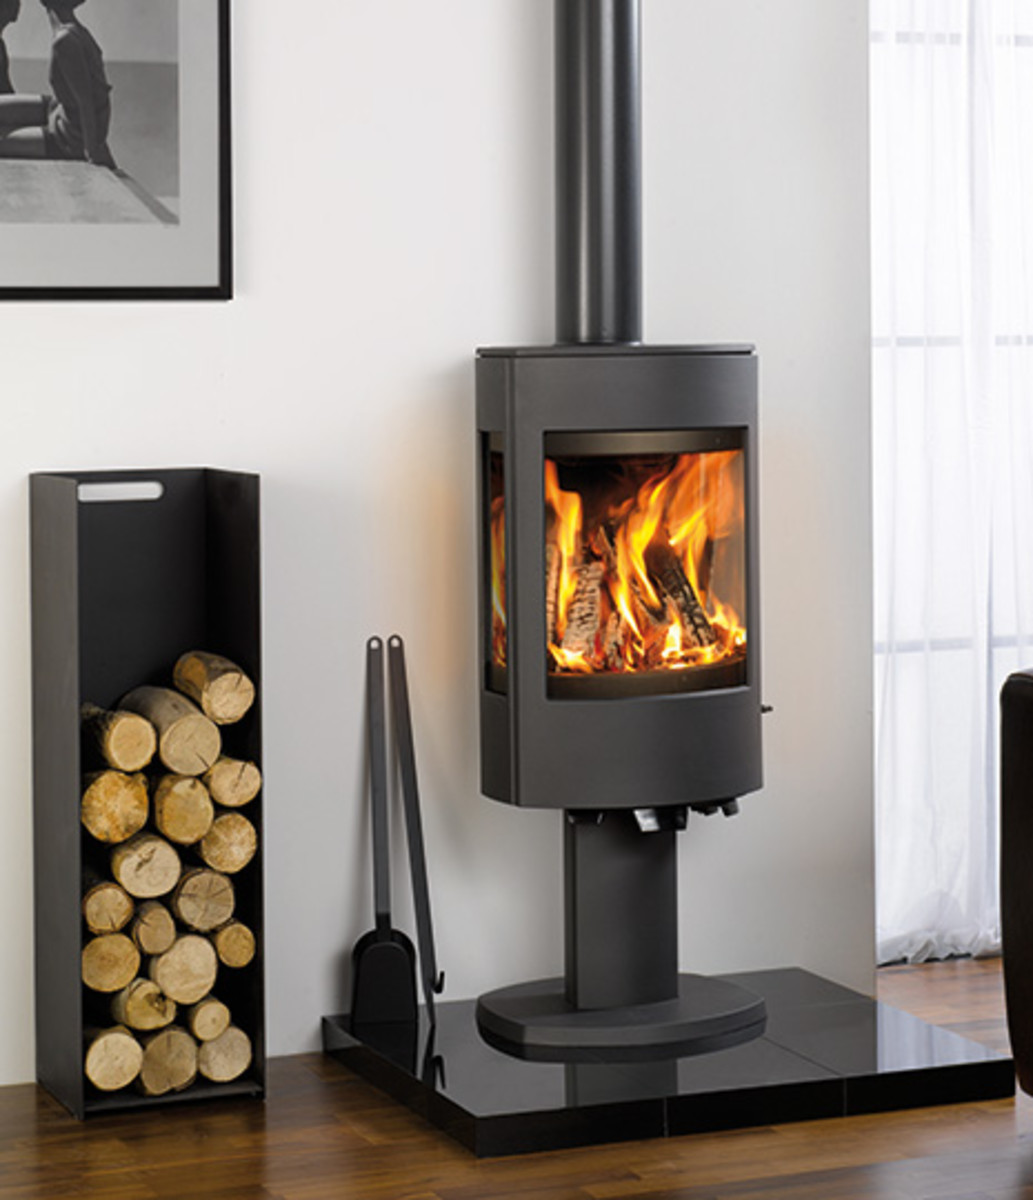 Wood Burning Stove Accessories Hubpages